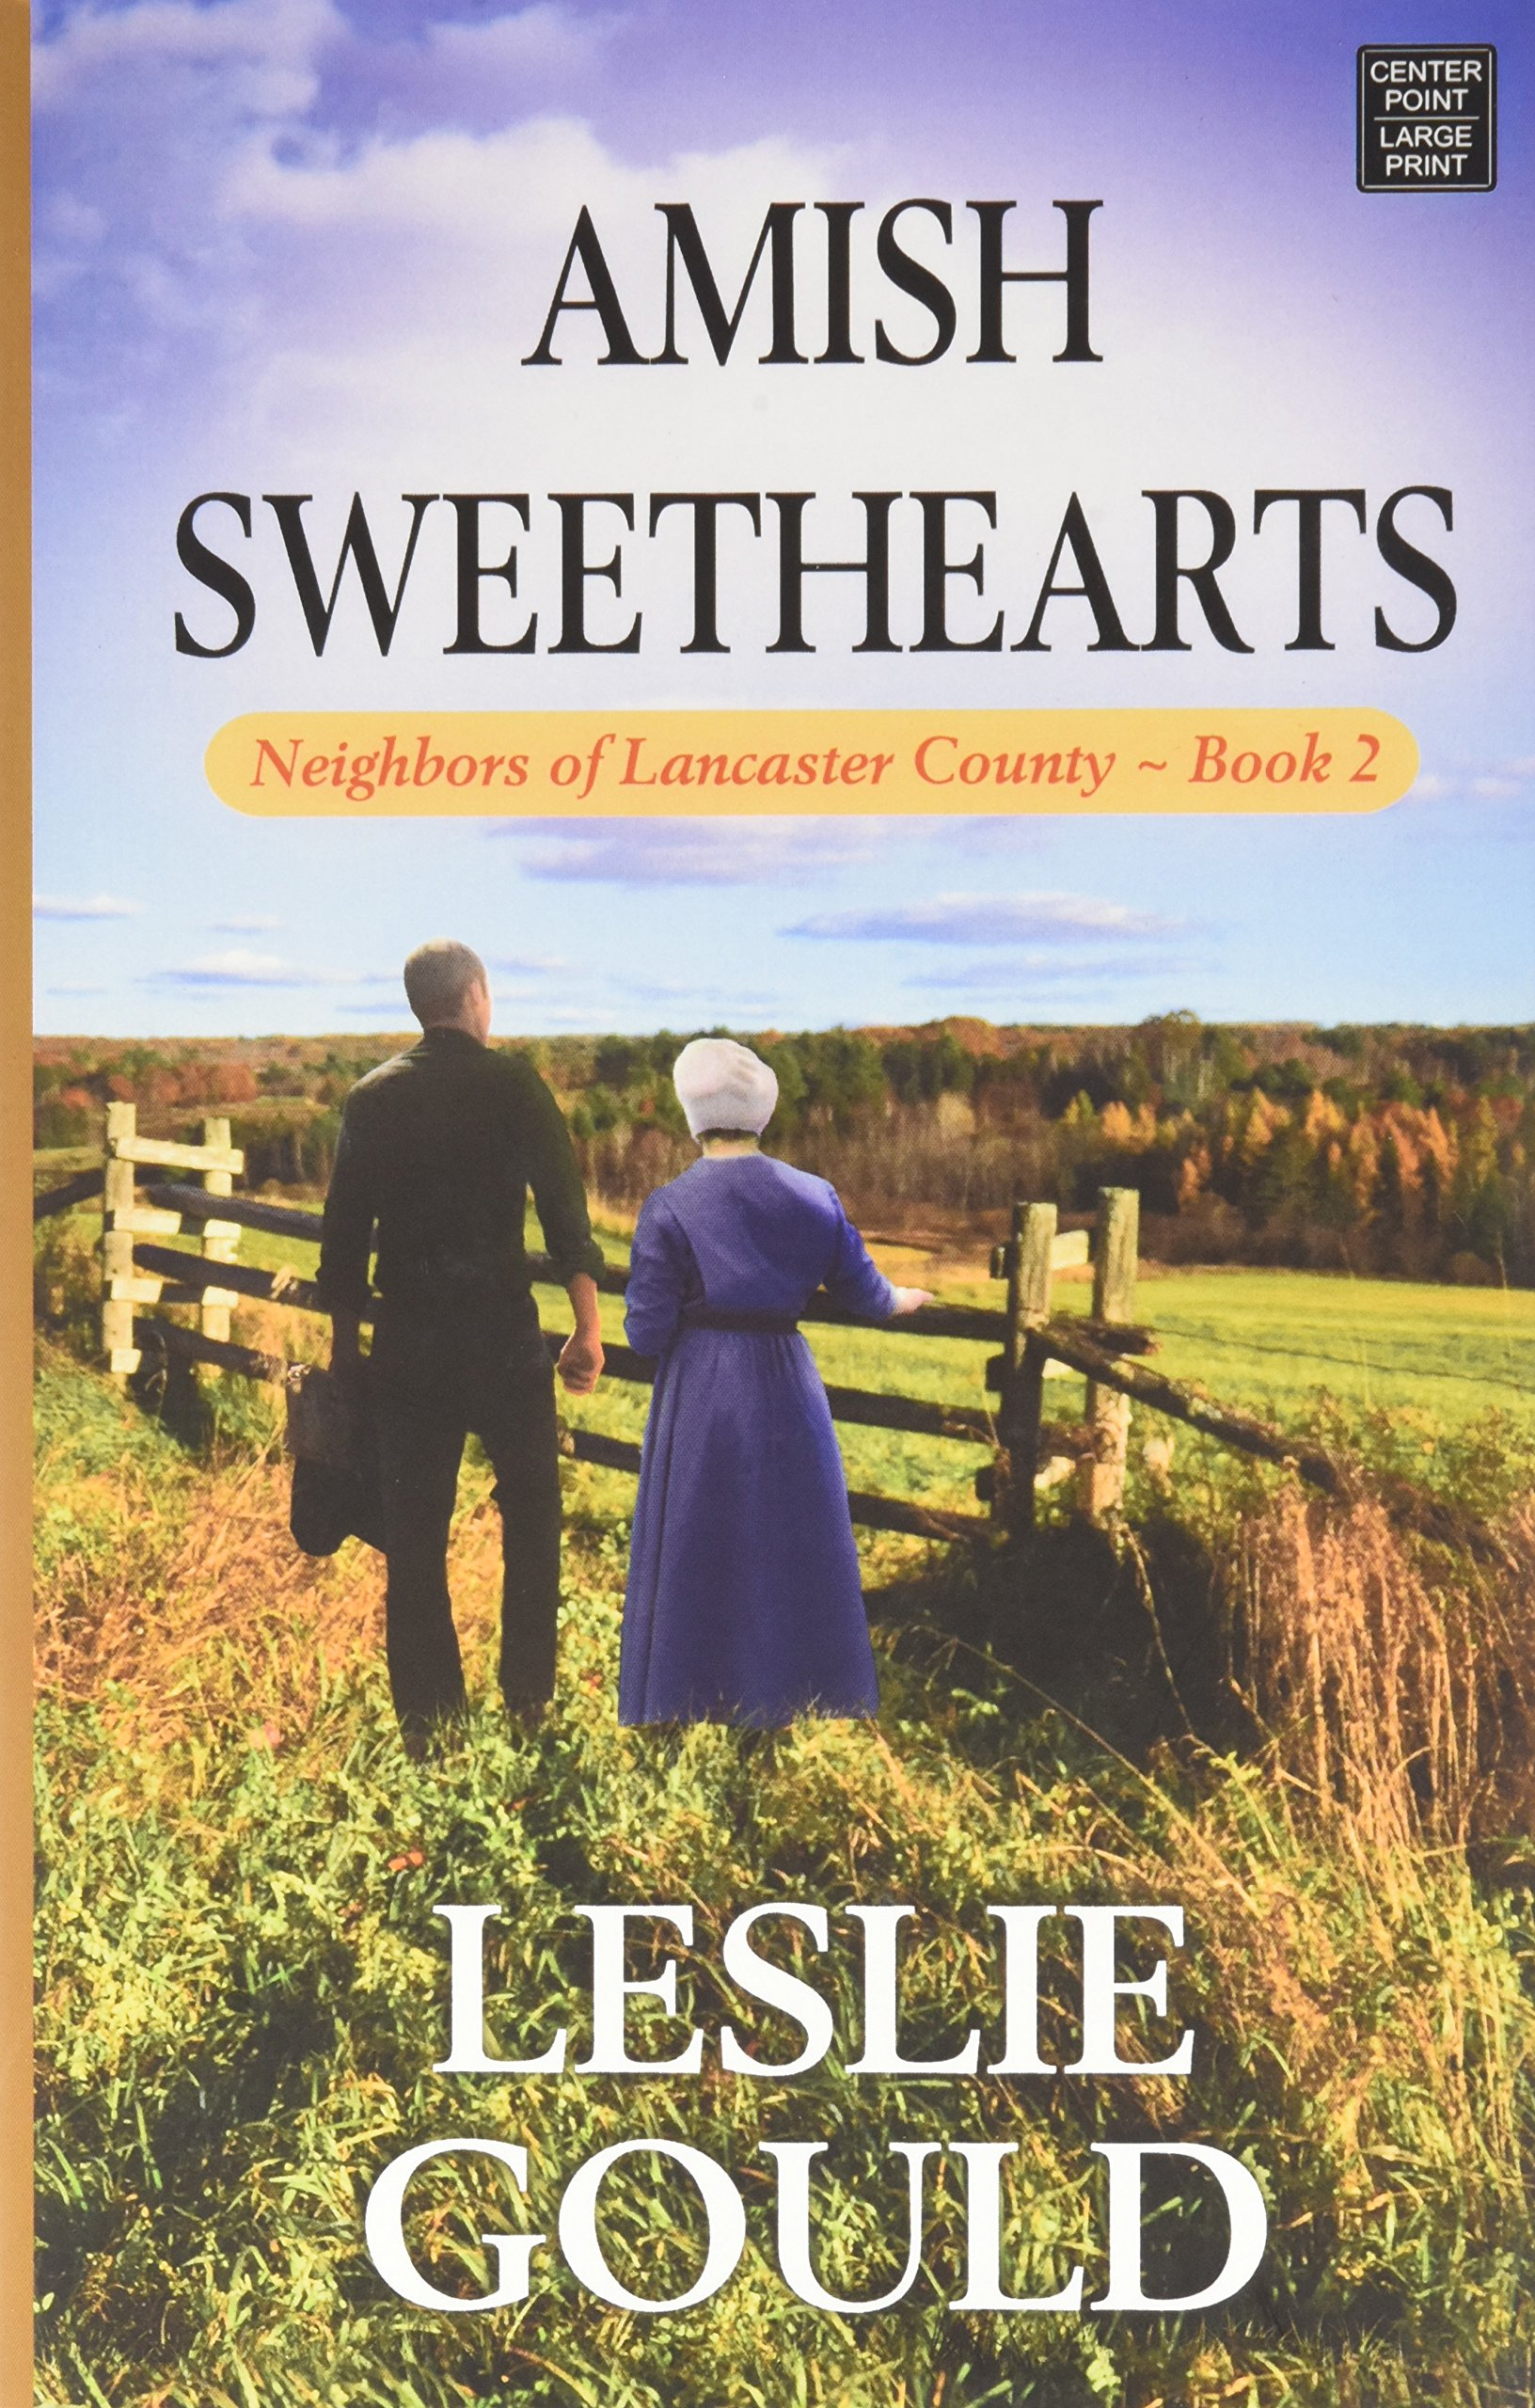 Amish Sweethearts: Neighbors of Lancaster County: Leslie Gould:  9781628998979: Literature: Amazon Canada